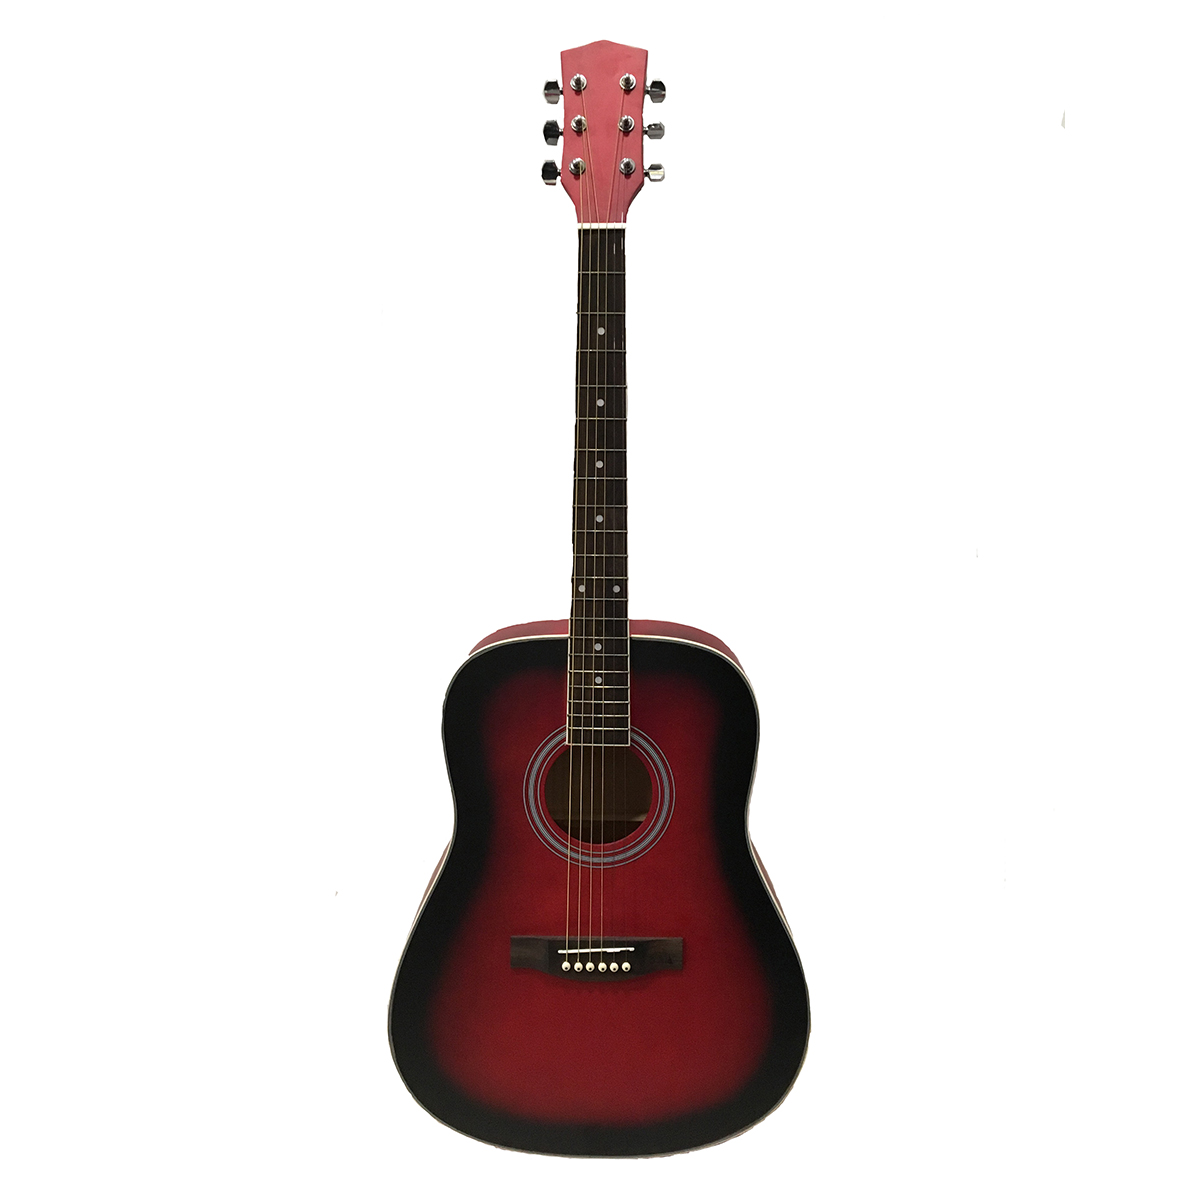 Dreadnought Acoustic Guitar by Trax, Redburst